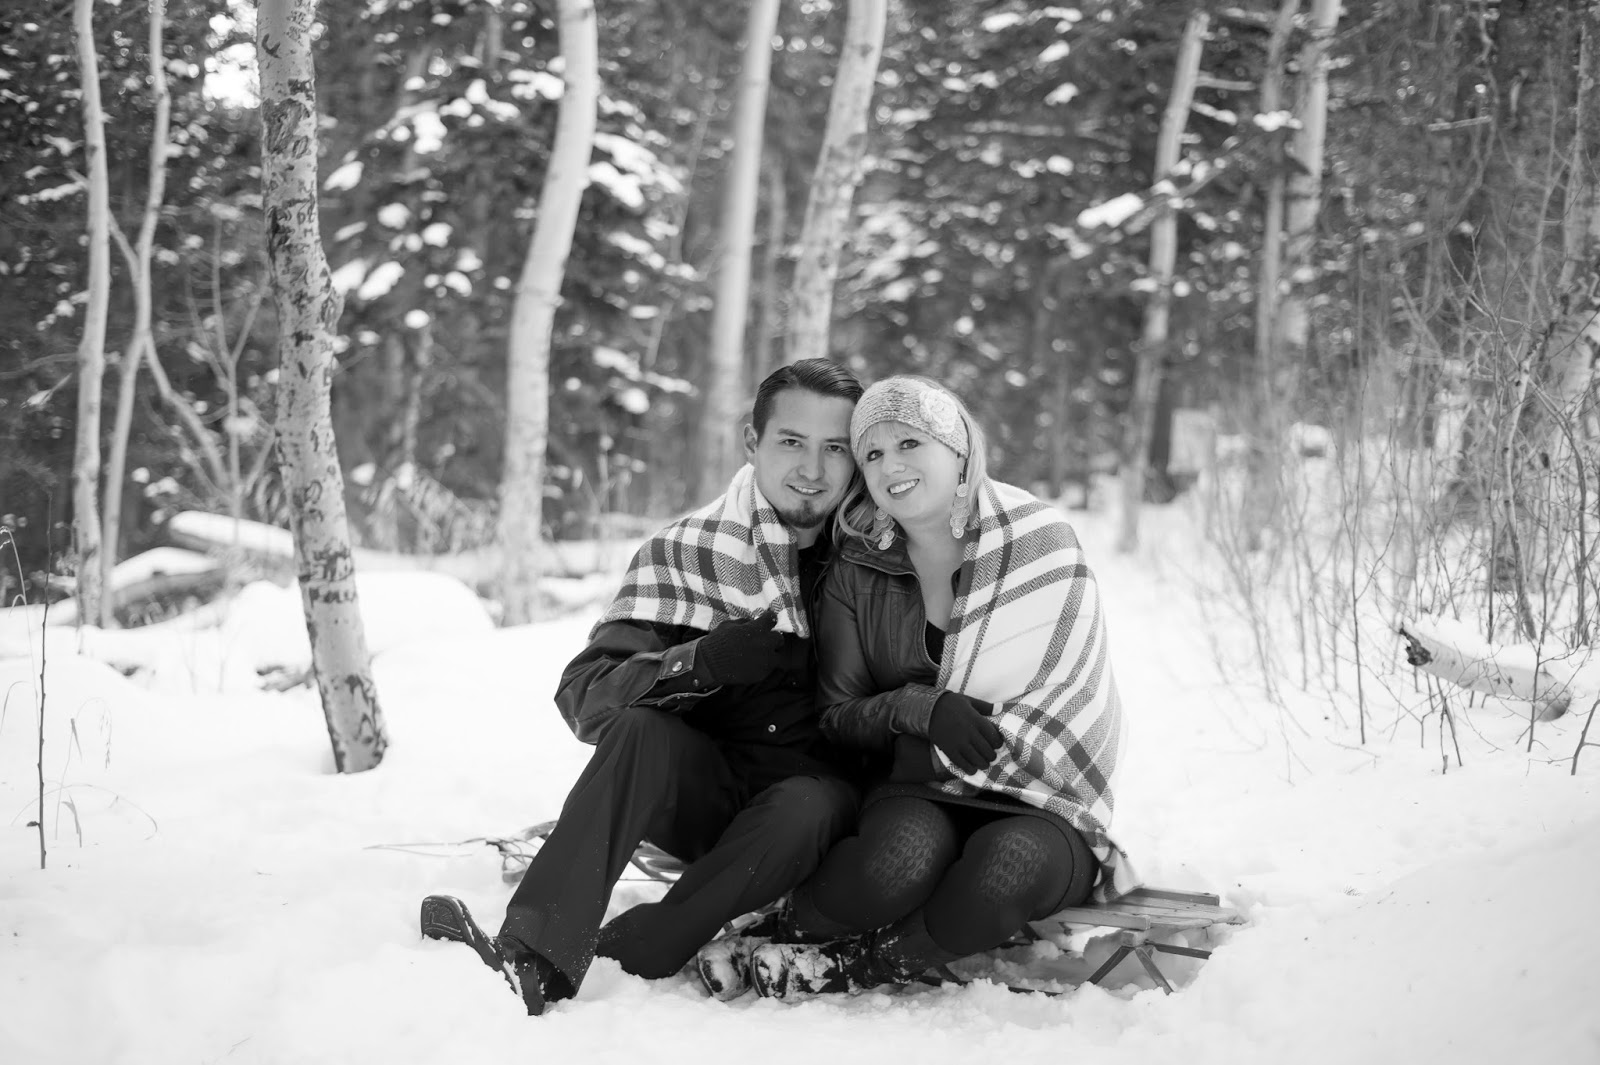 albuquerque wedding photographer, wedding photographers in albuquerque, engagement session in albuquerque, albuquerque engagement pictures, sandia crest, sandia crest engagement, engagement photos at sandia crest, winter engagement pictures, engagement pictures in winter, engagement pictures in snow, snowy engagment